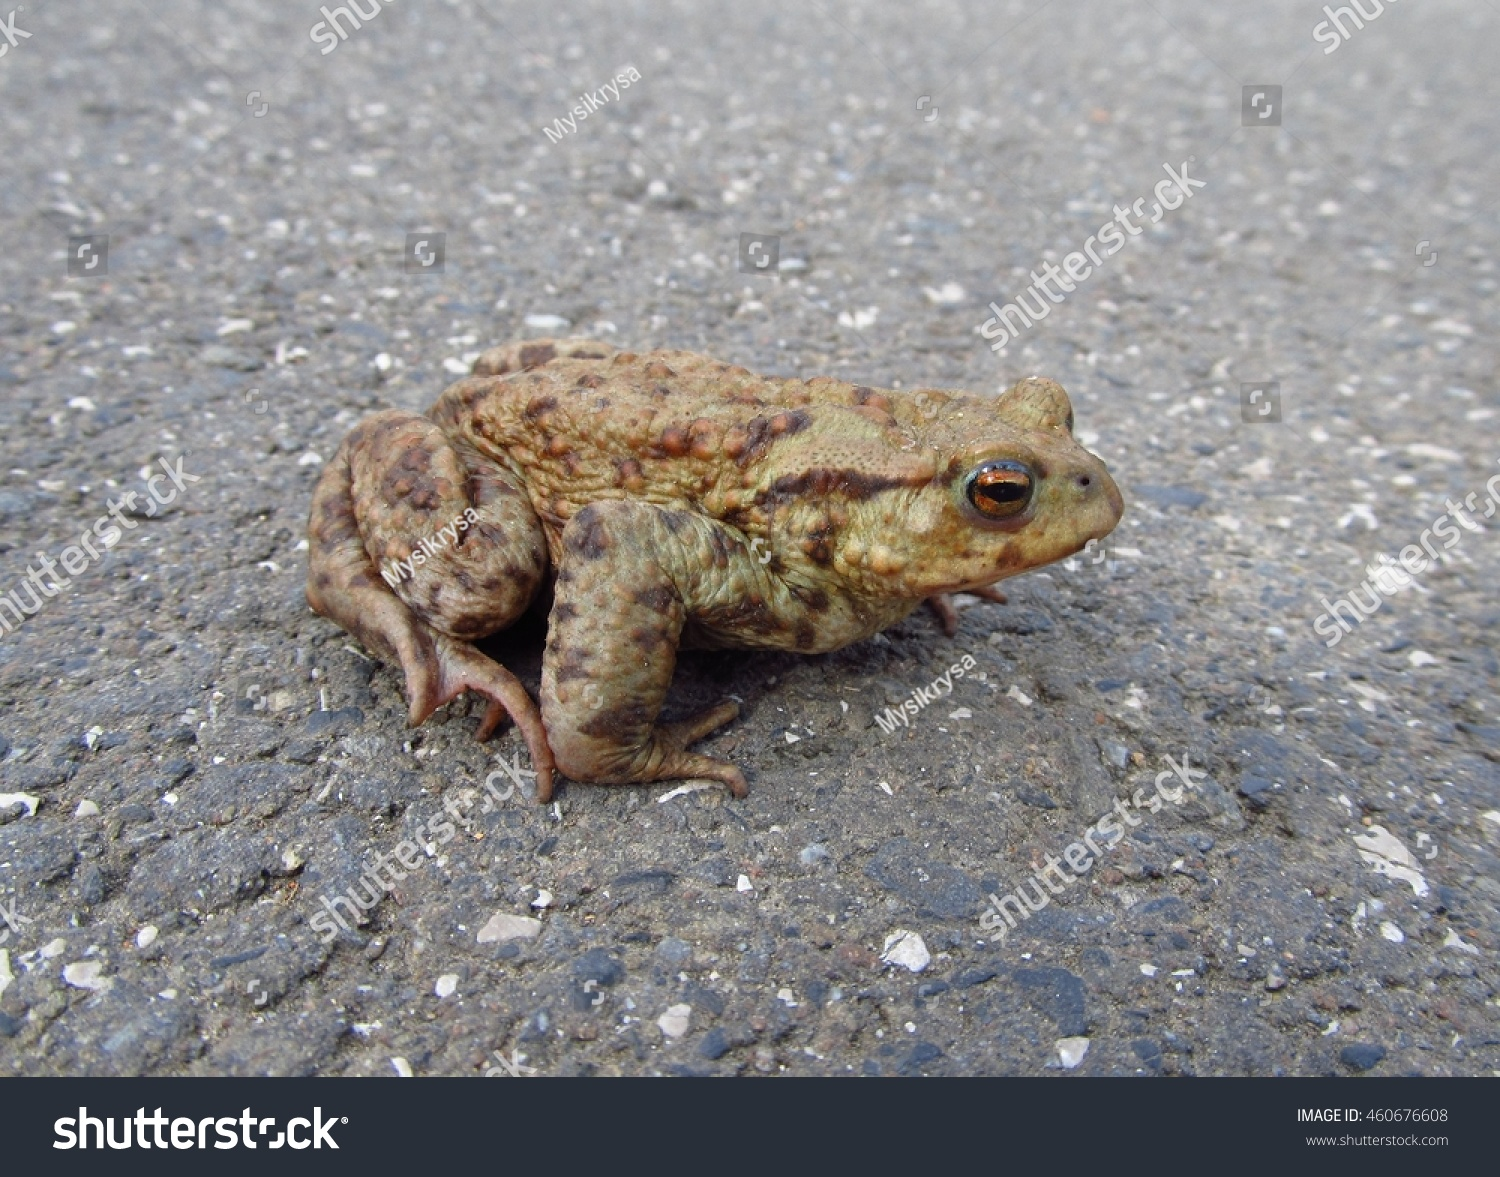 close photo toad on road stock photo royalty free 460676608